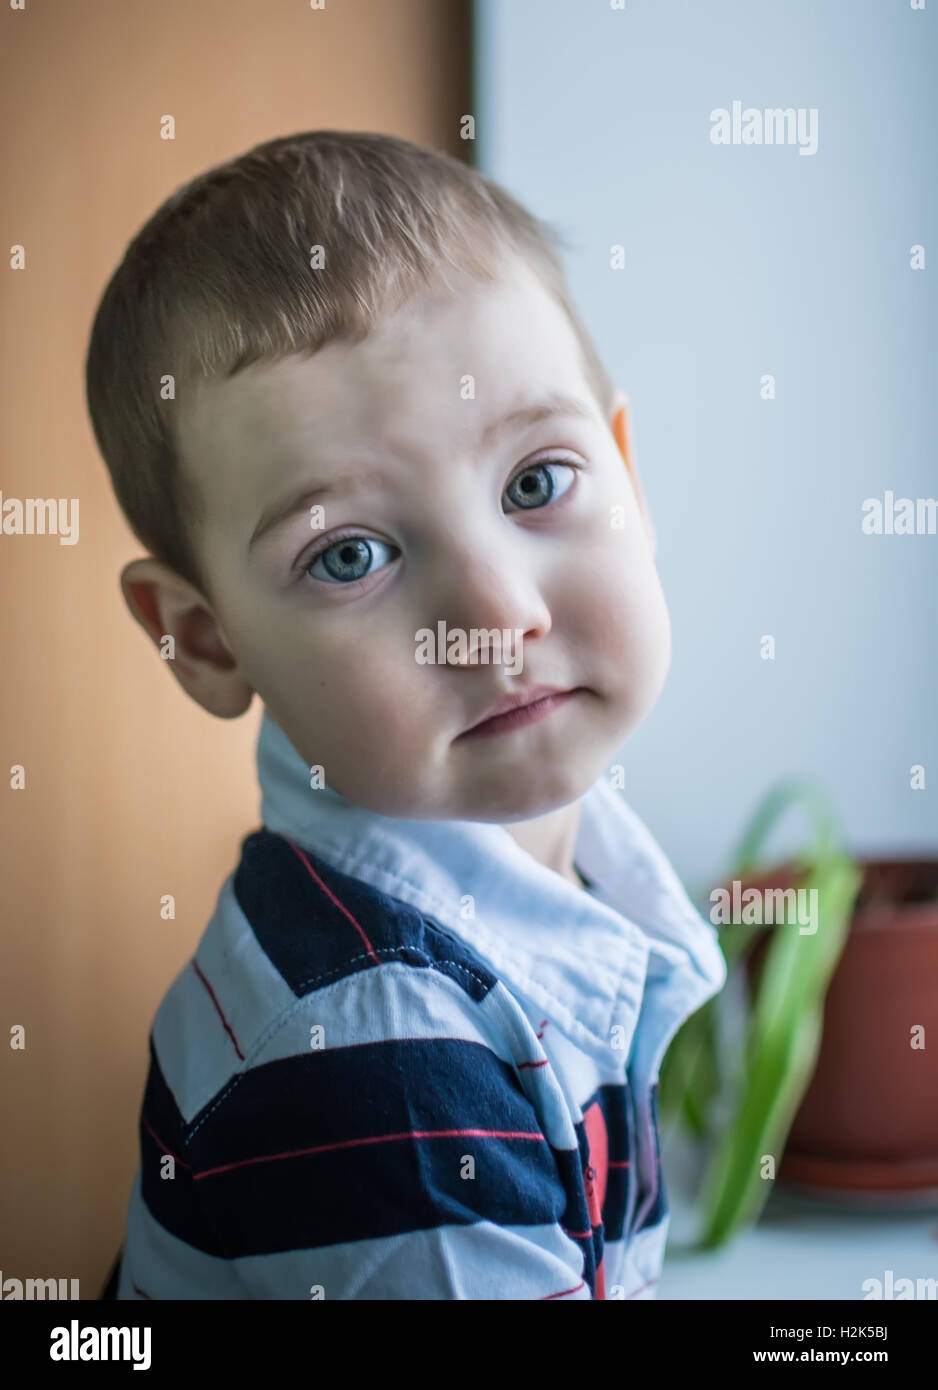 The boy at the window - Stock Image